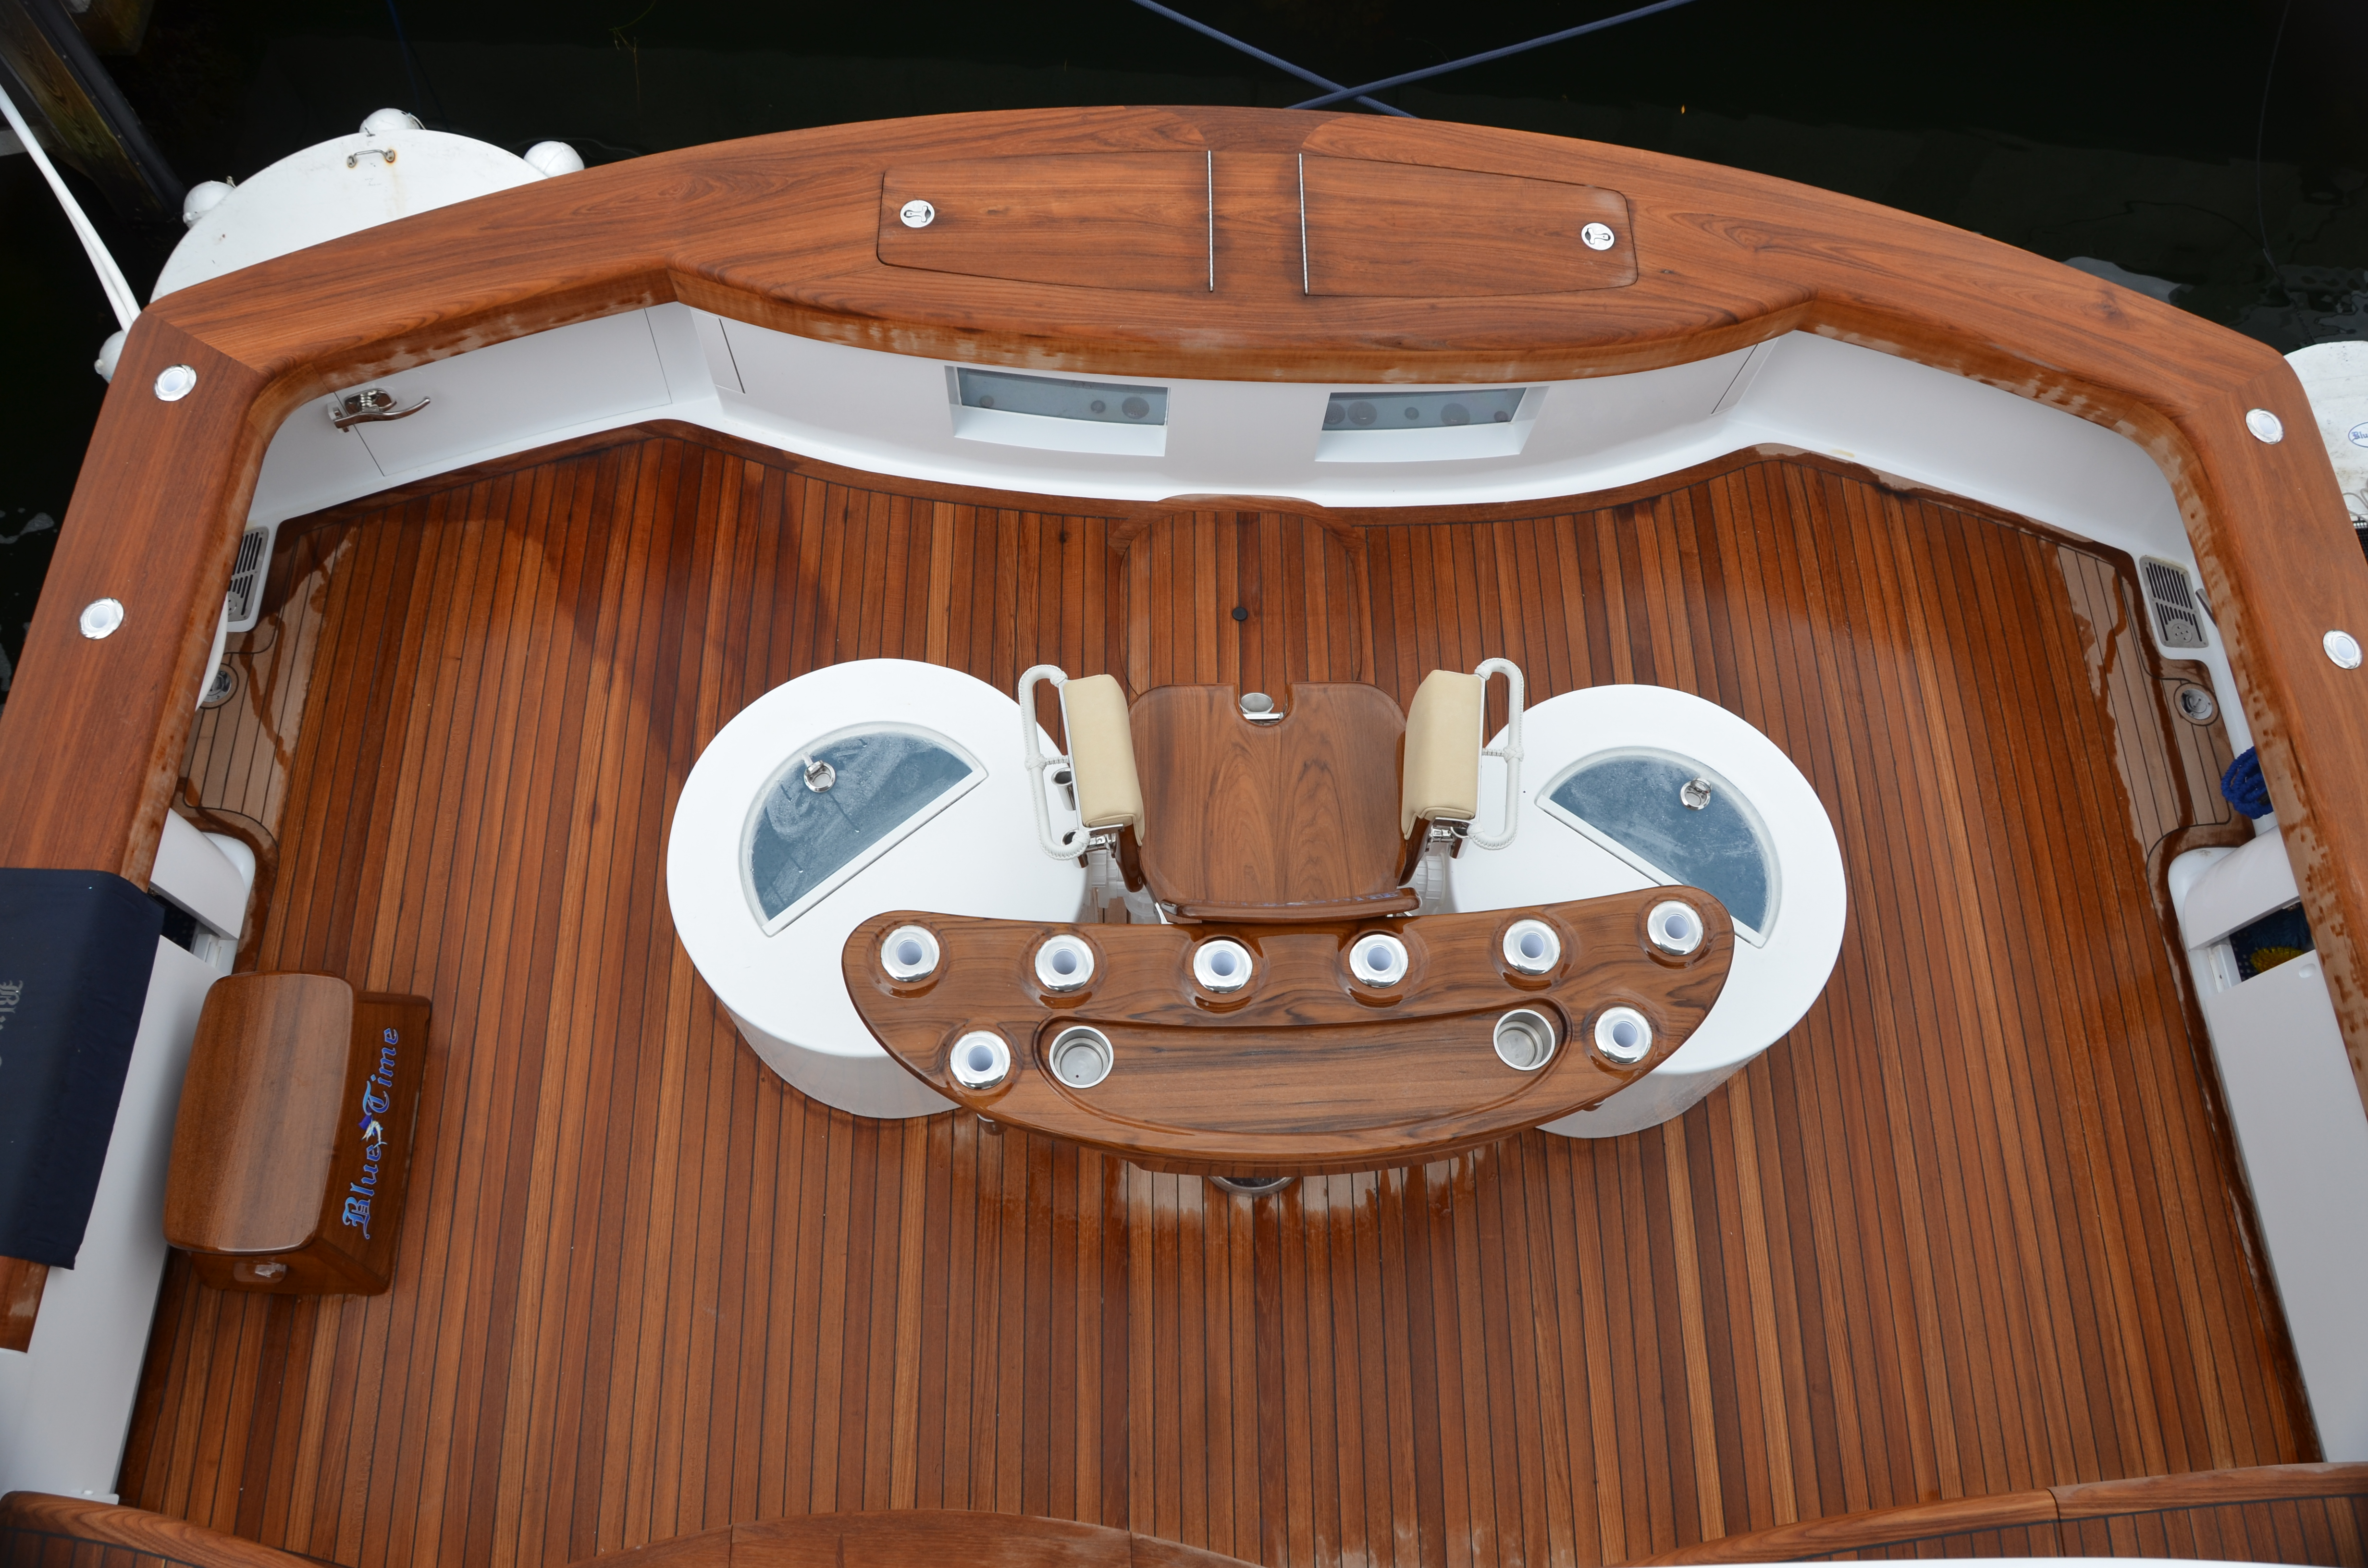 Sea Trials Captain Ken Kreislers Boat And Yacht Report Sitex Transducer Wiring Diagram Colors Among Other Tourney Equipment Blue Times Business End Features A 170 Square Foot Teak Cockpit